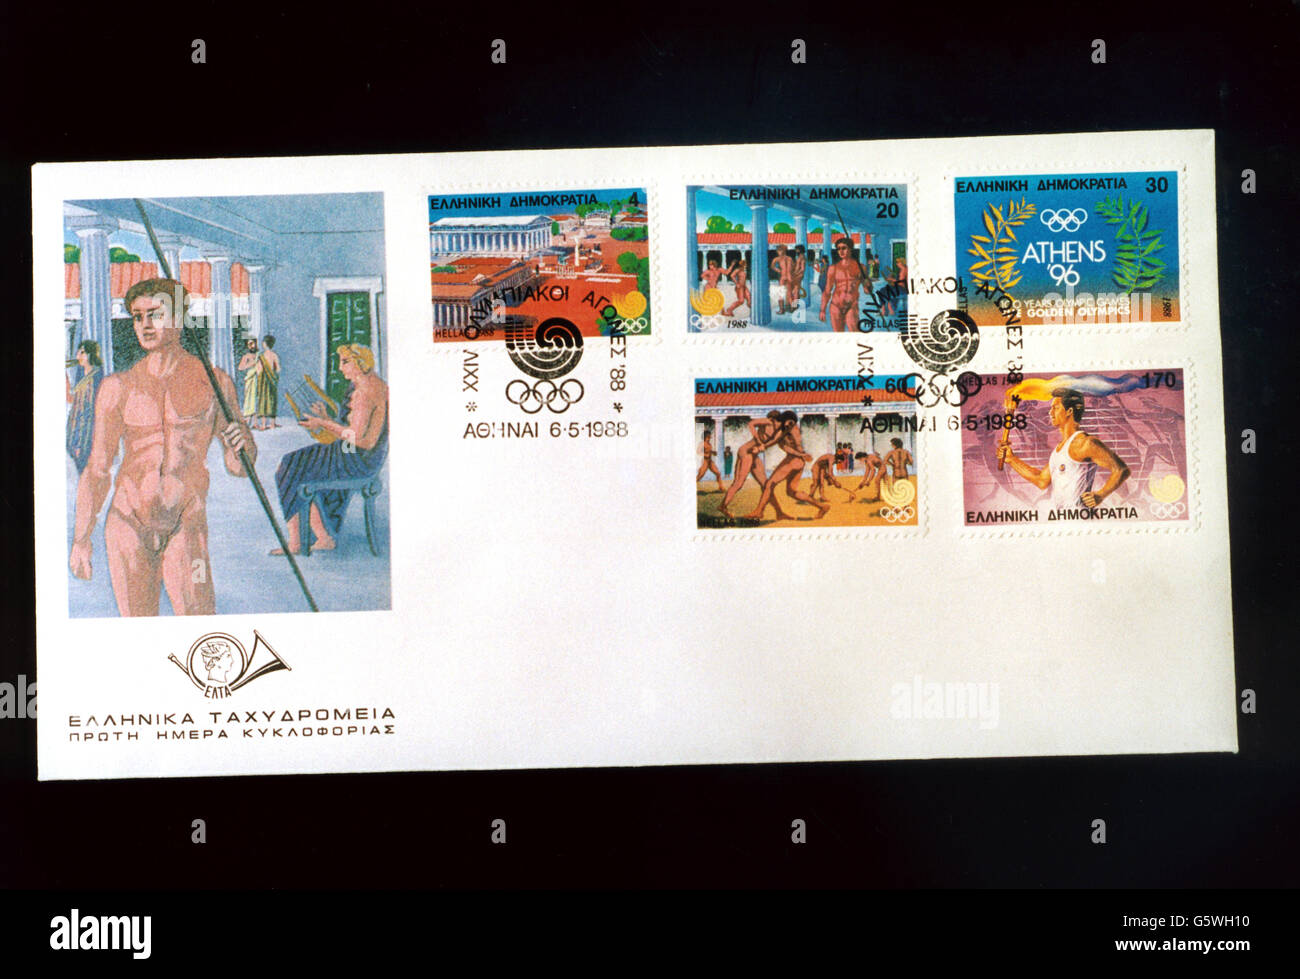 Stamps from Olympic games - Stock Image